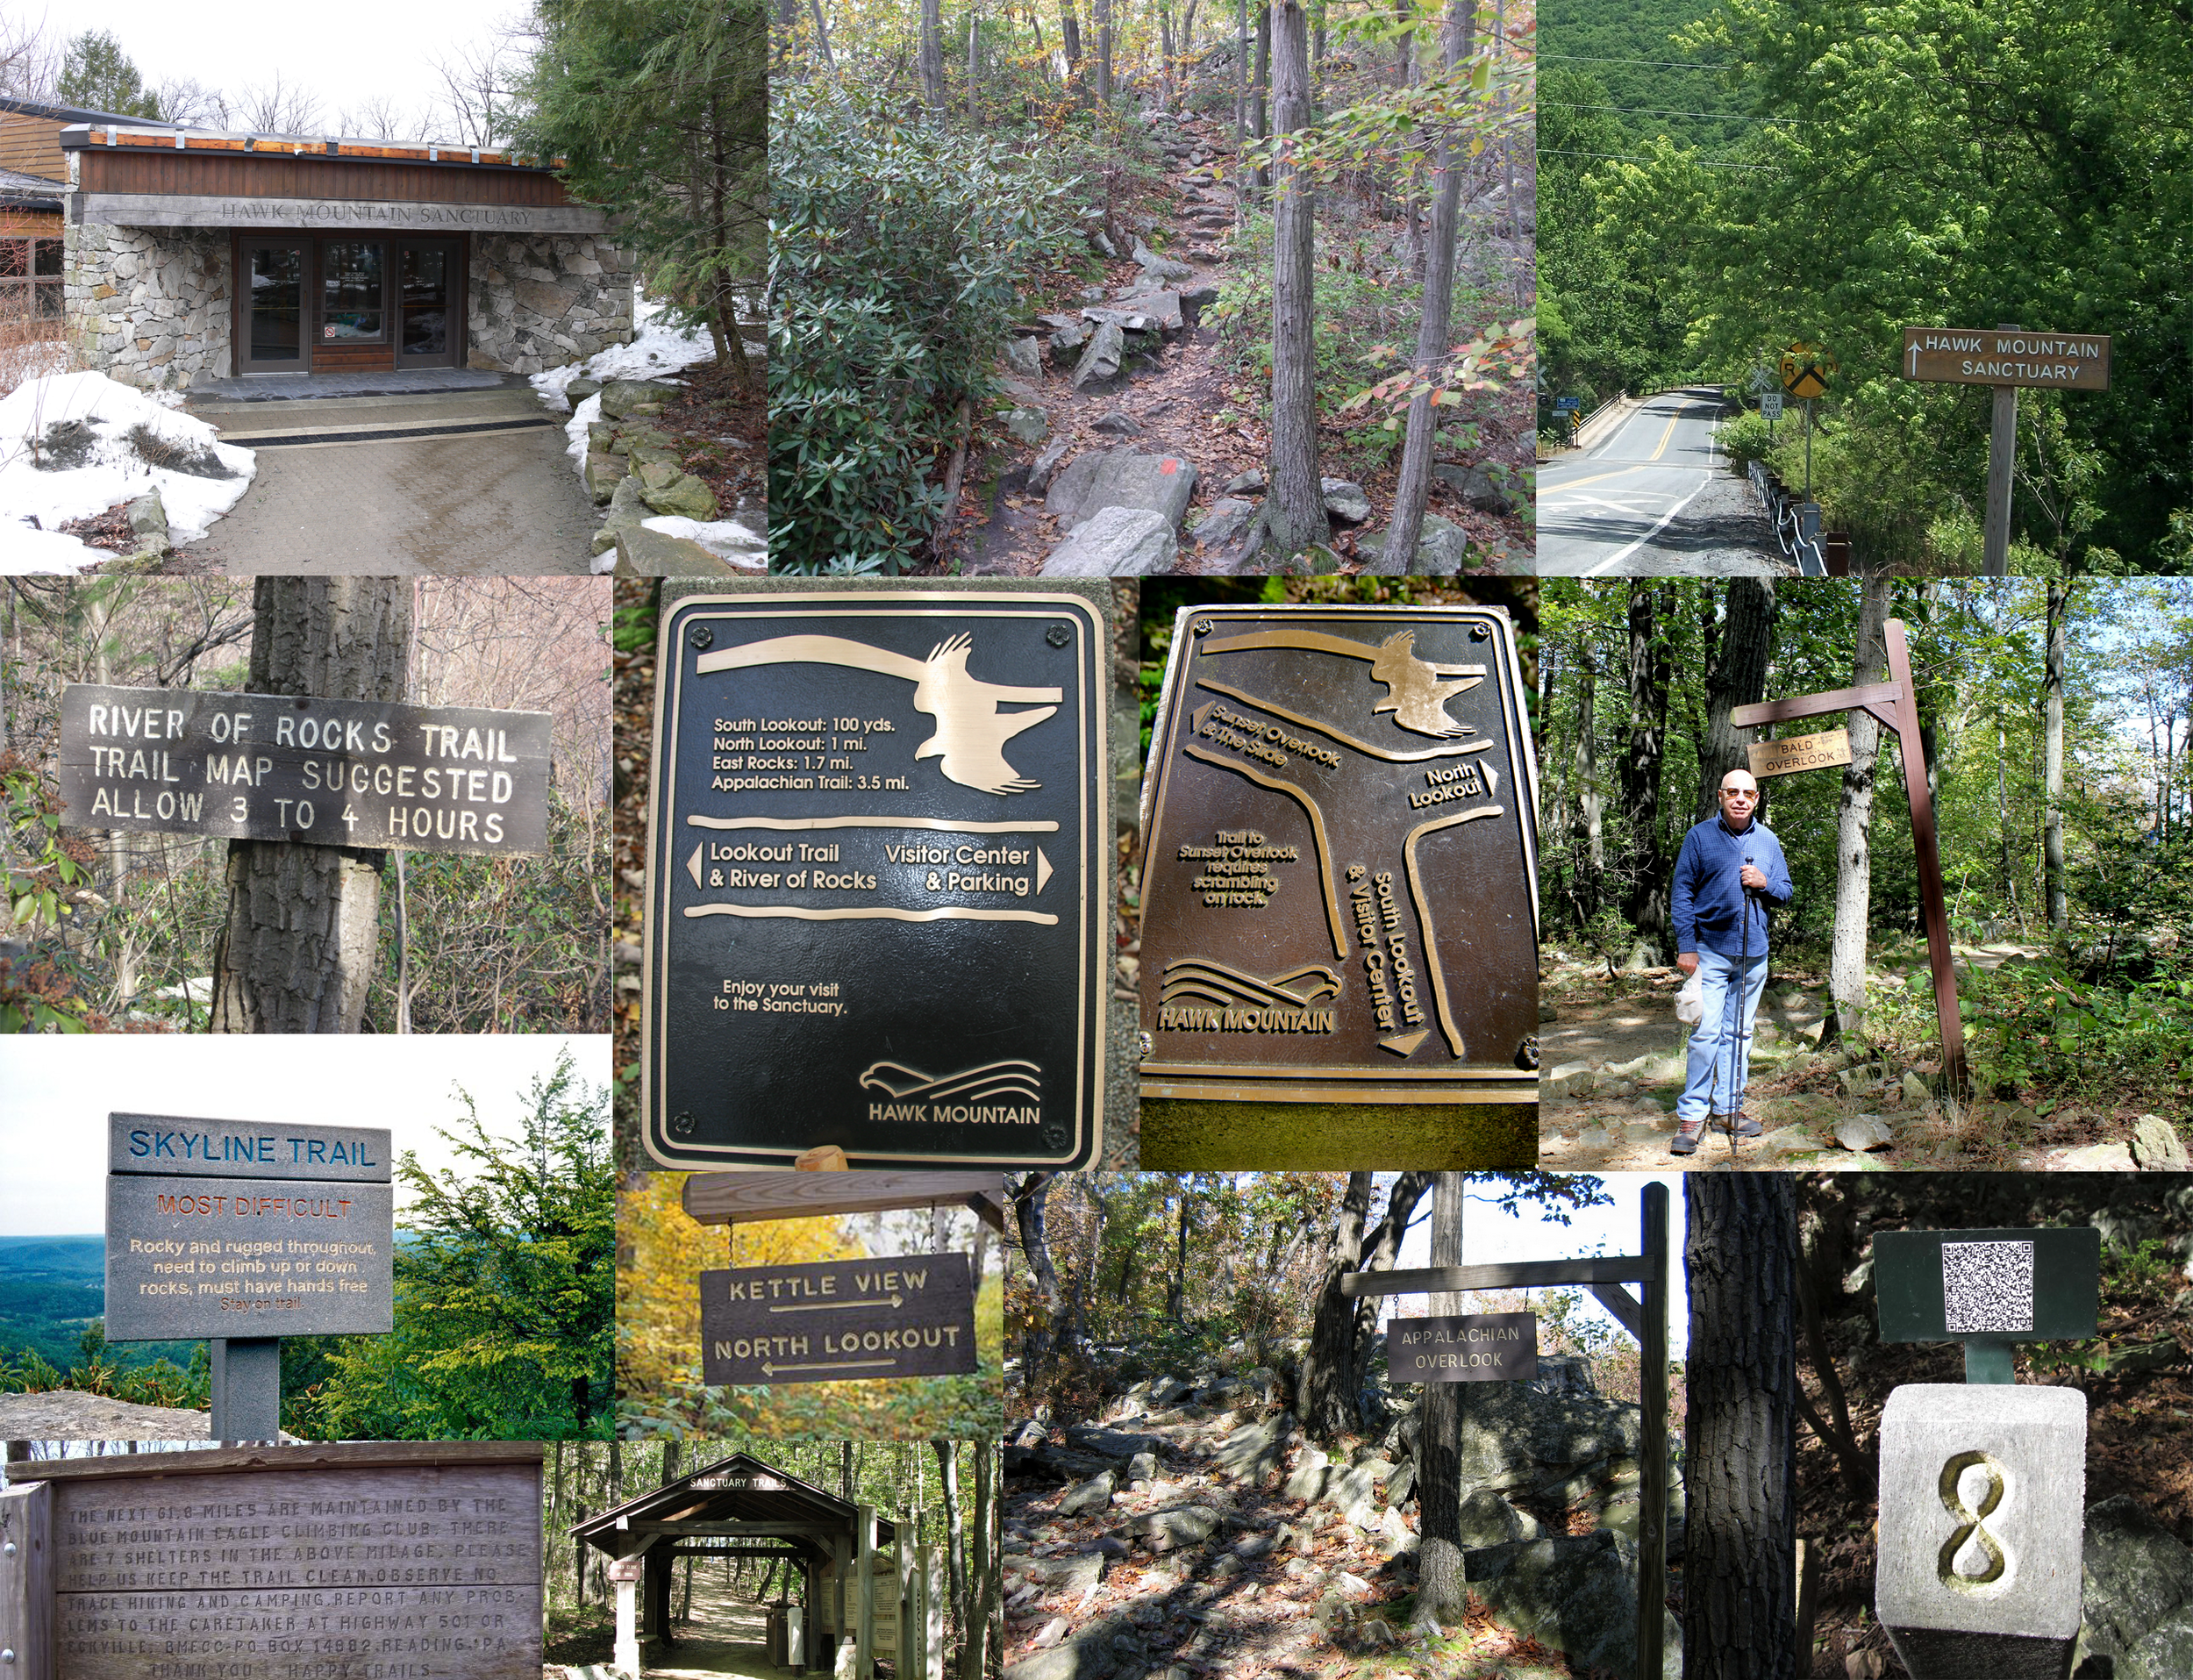 The current signage features a mix of different designs, new and old, at varying degrees of deconstruction from the elements.